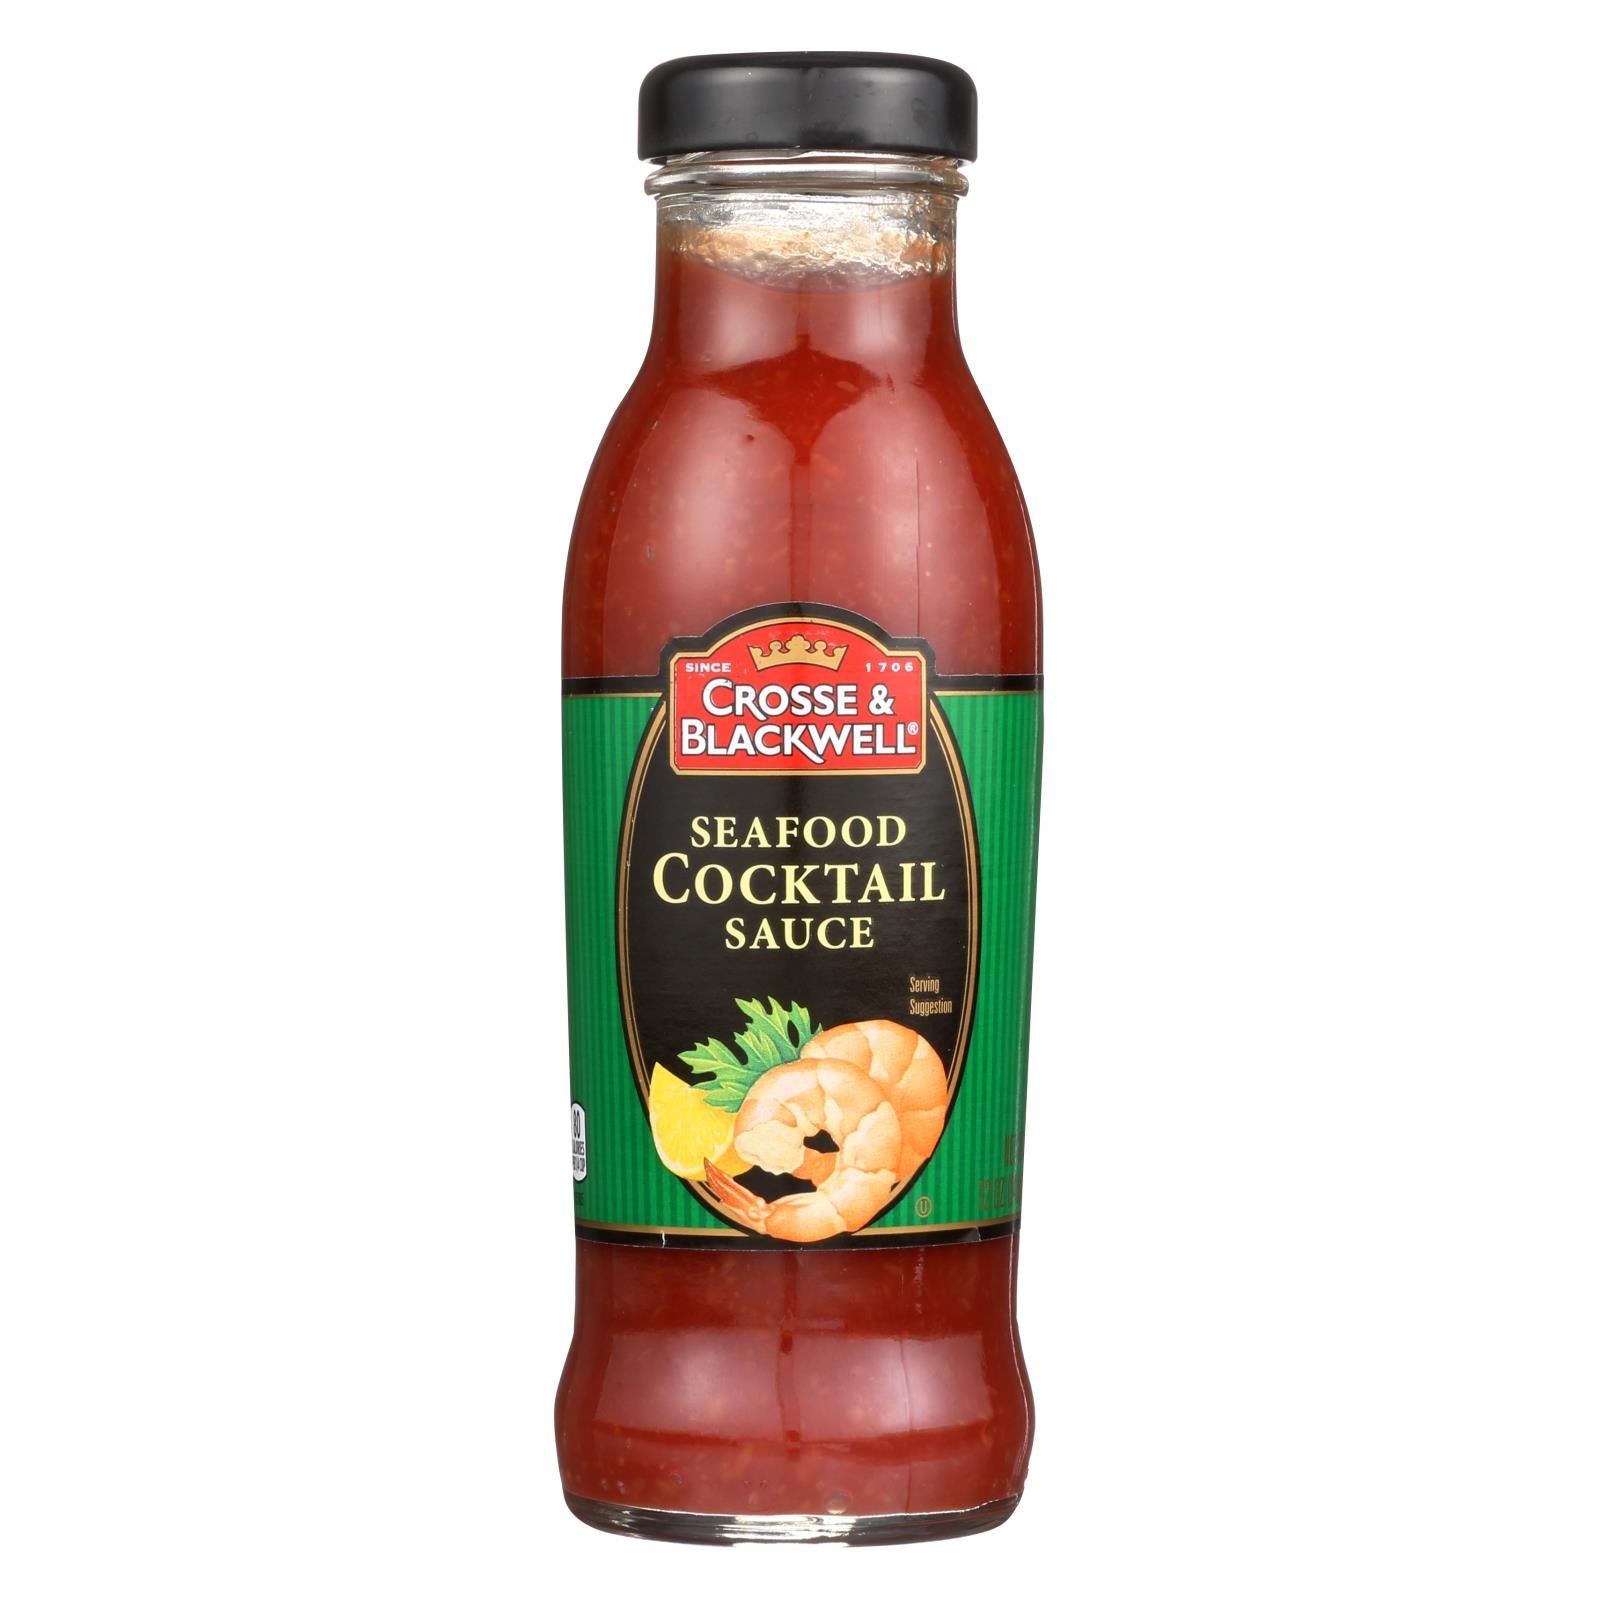 Crosse And Blackwell Seafood Sauce - Cocktail Sauce - Case Of 6 - 12 Oz. HG0324624